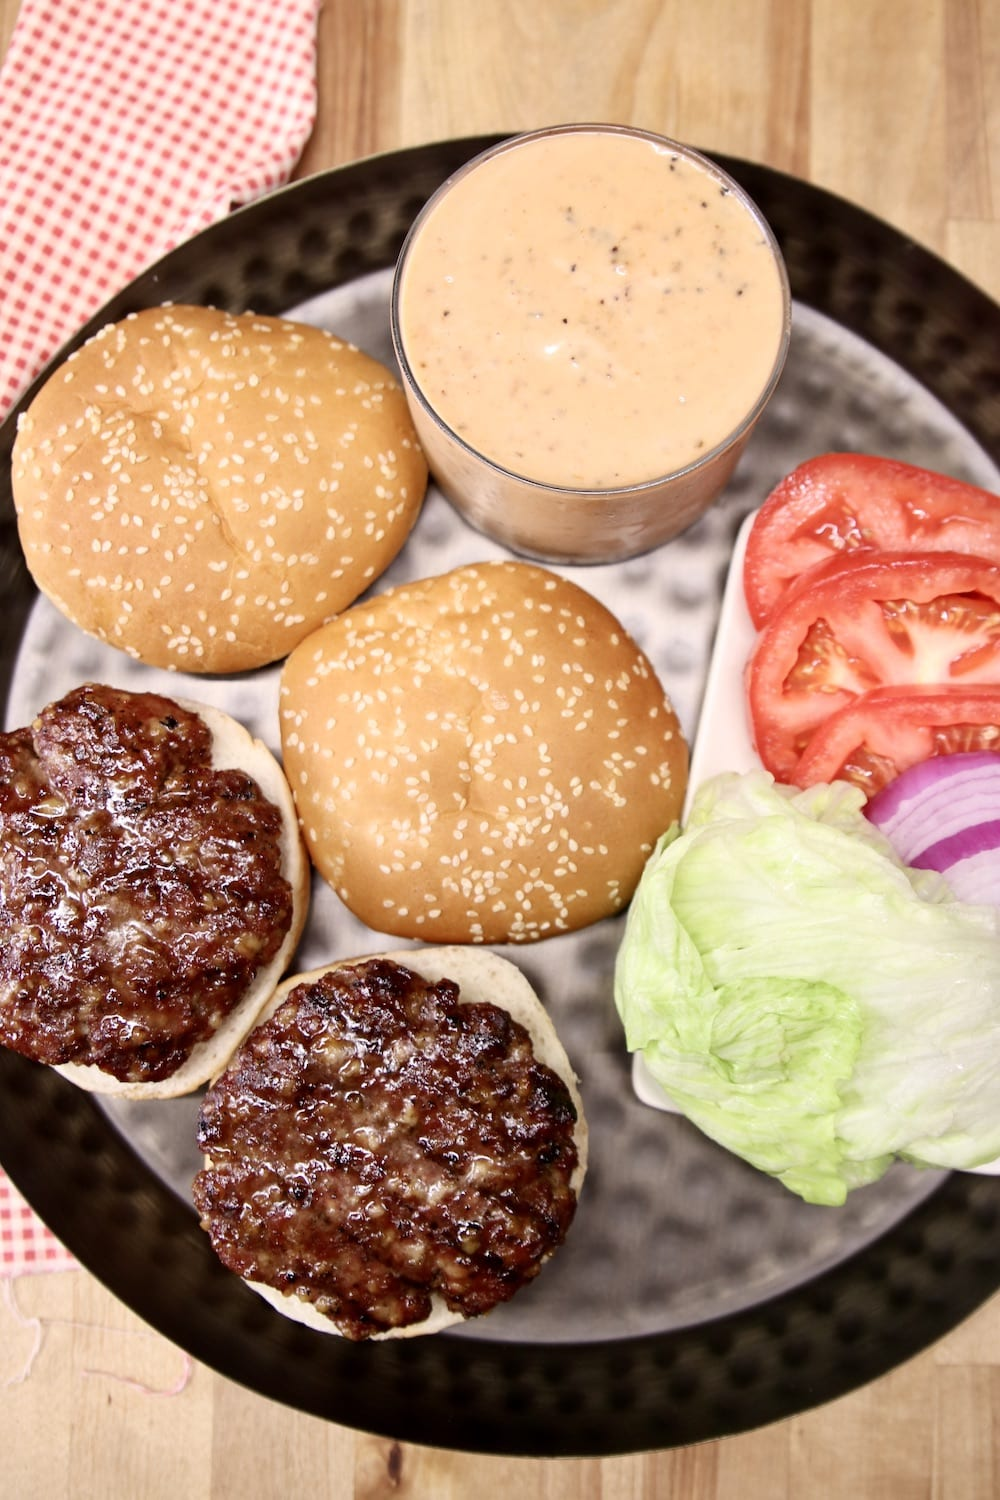 platter with 2 burger patties, buns, lettuce, tomato, onion and burger sauce